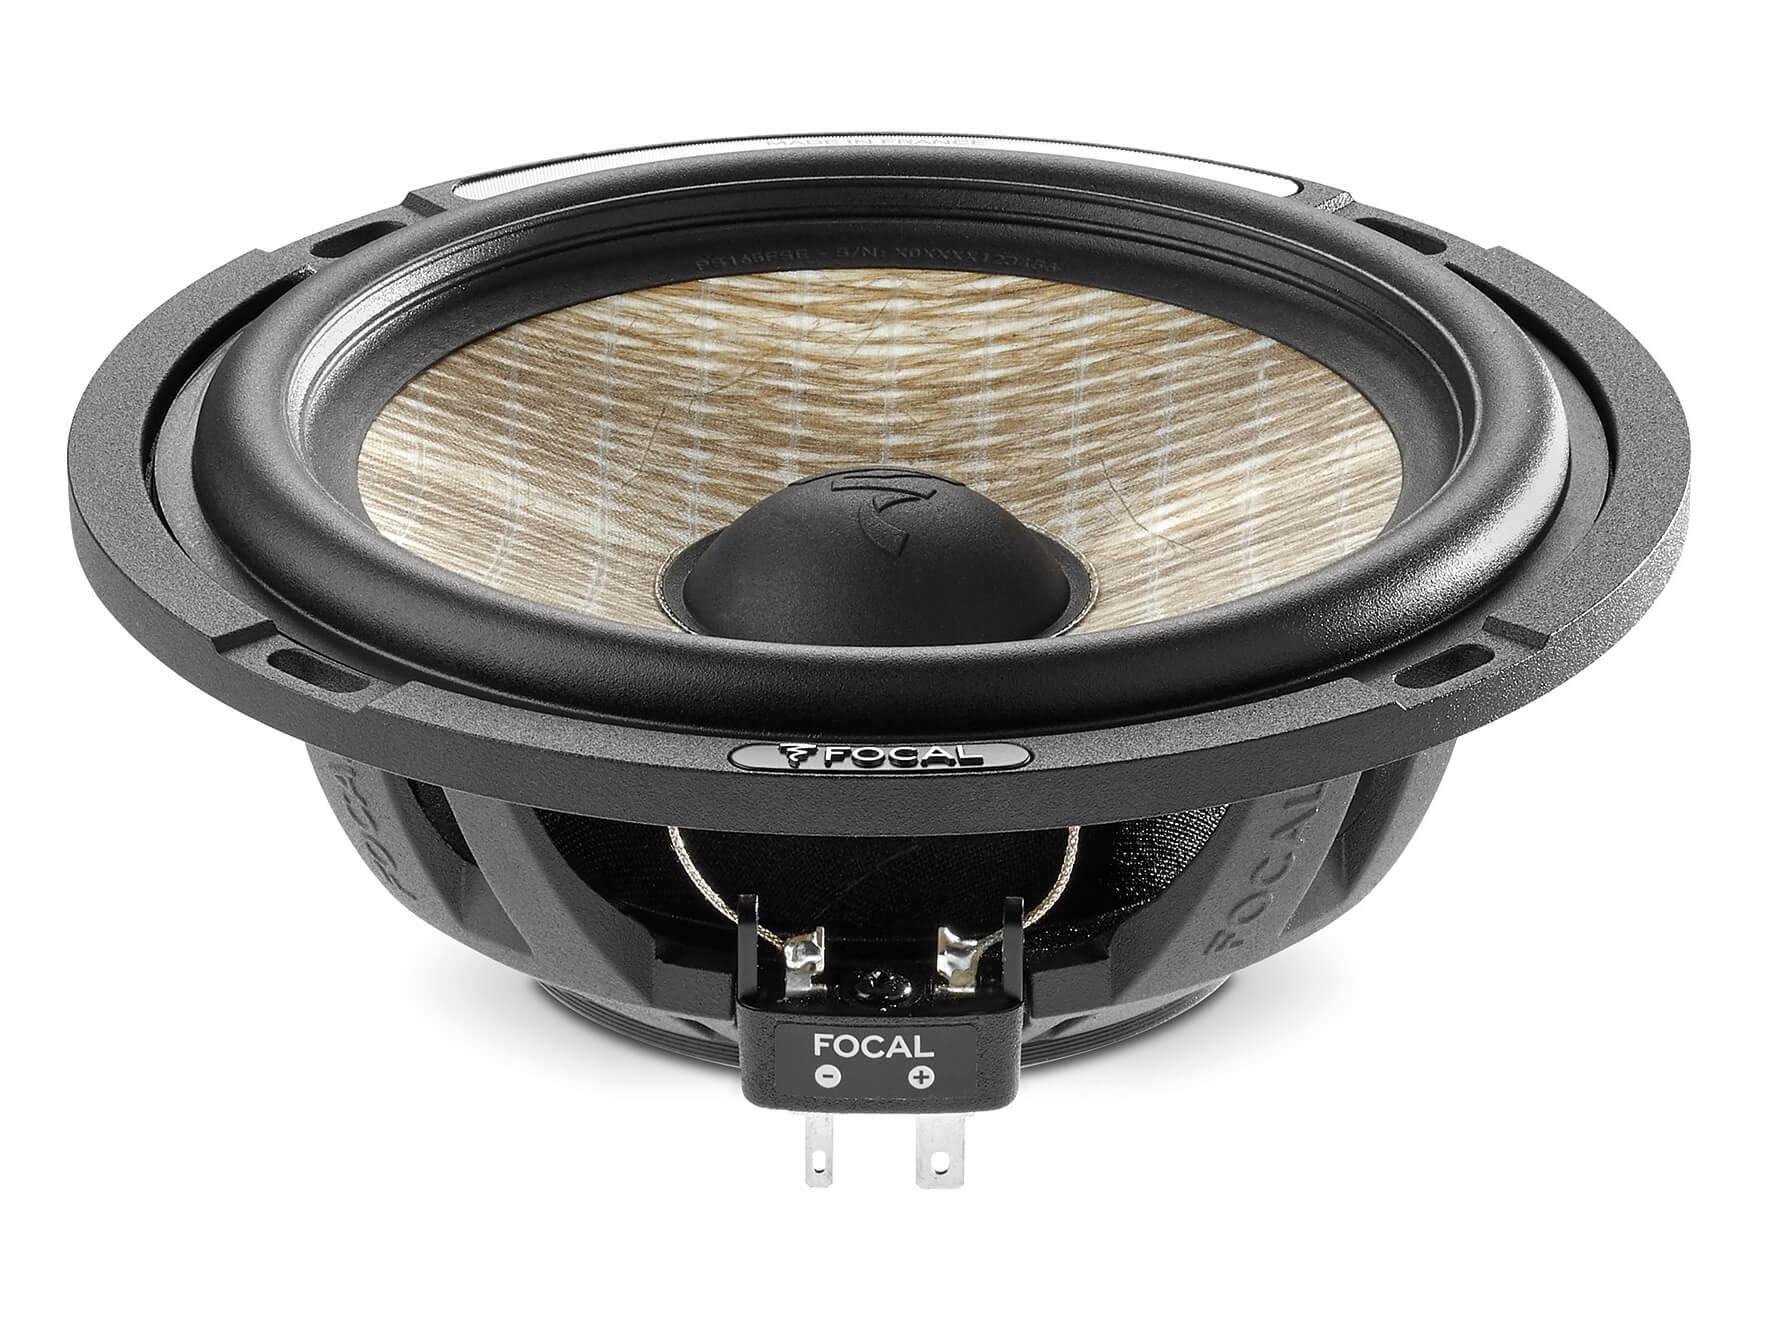 Focal Performance Flax Evo PS 165 FSE - Top